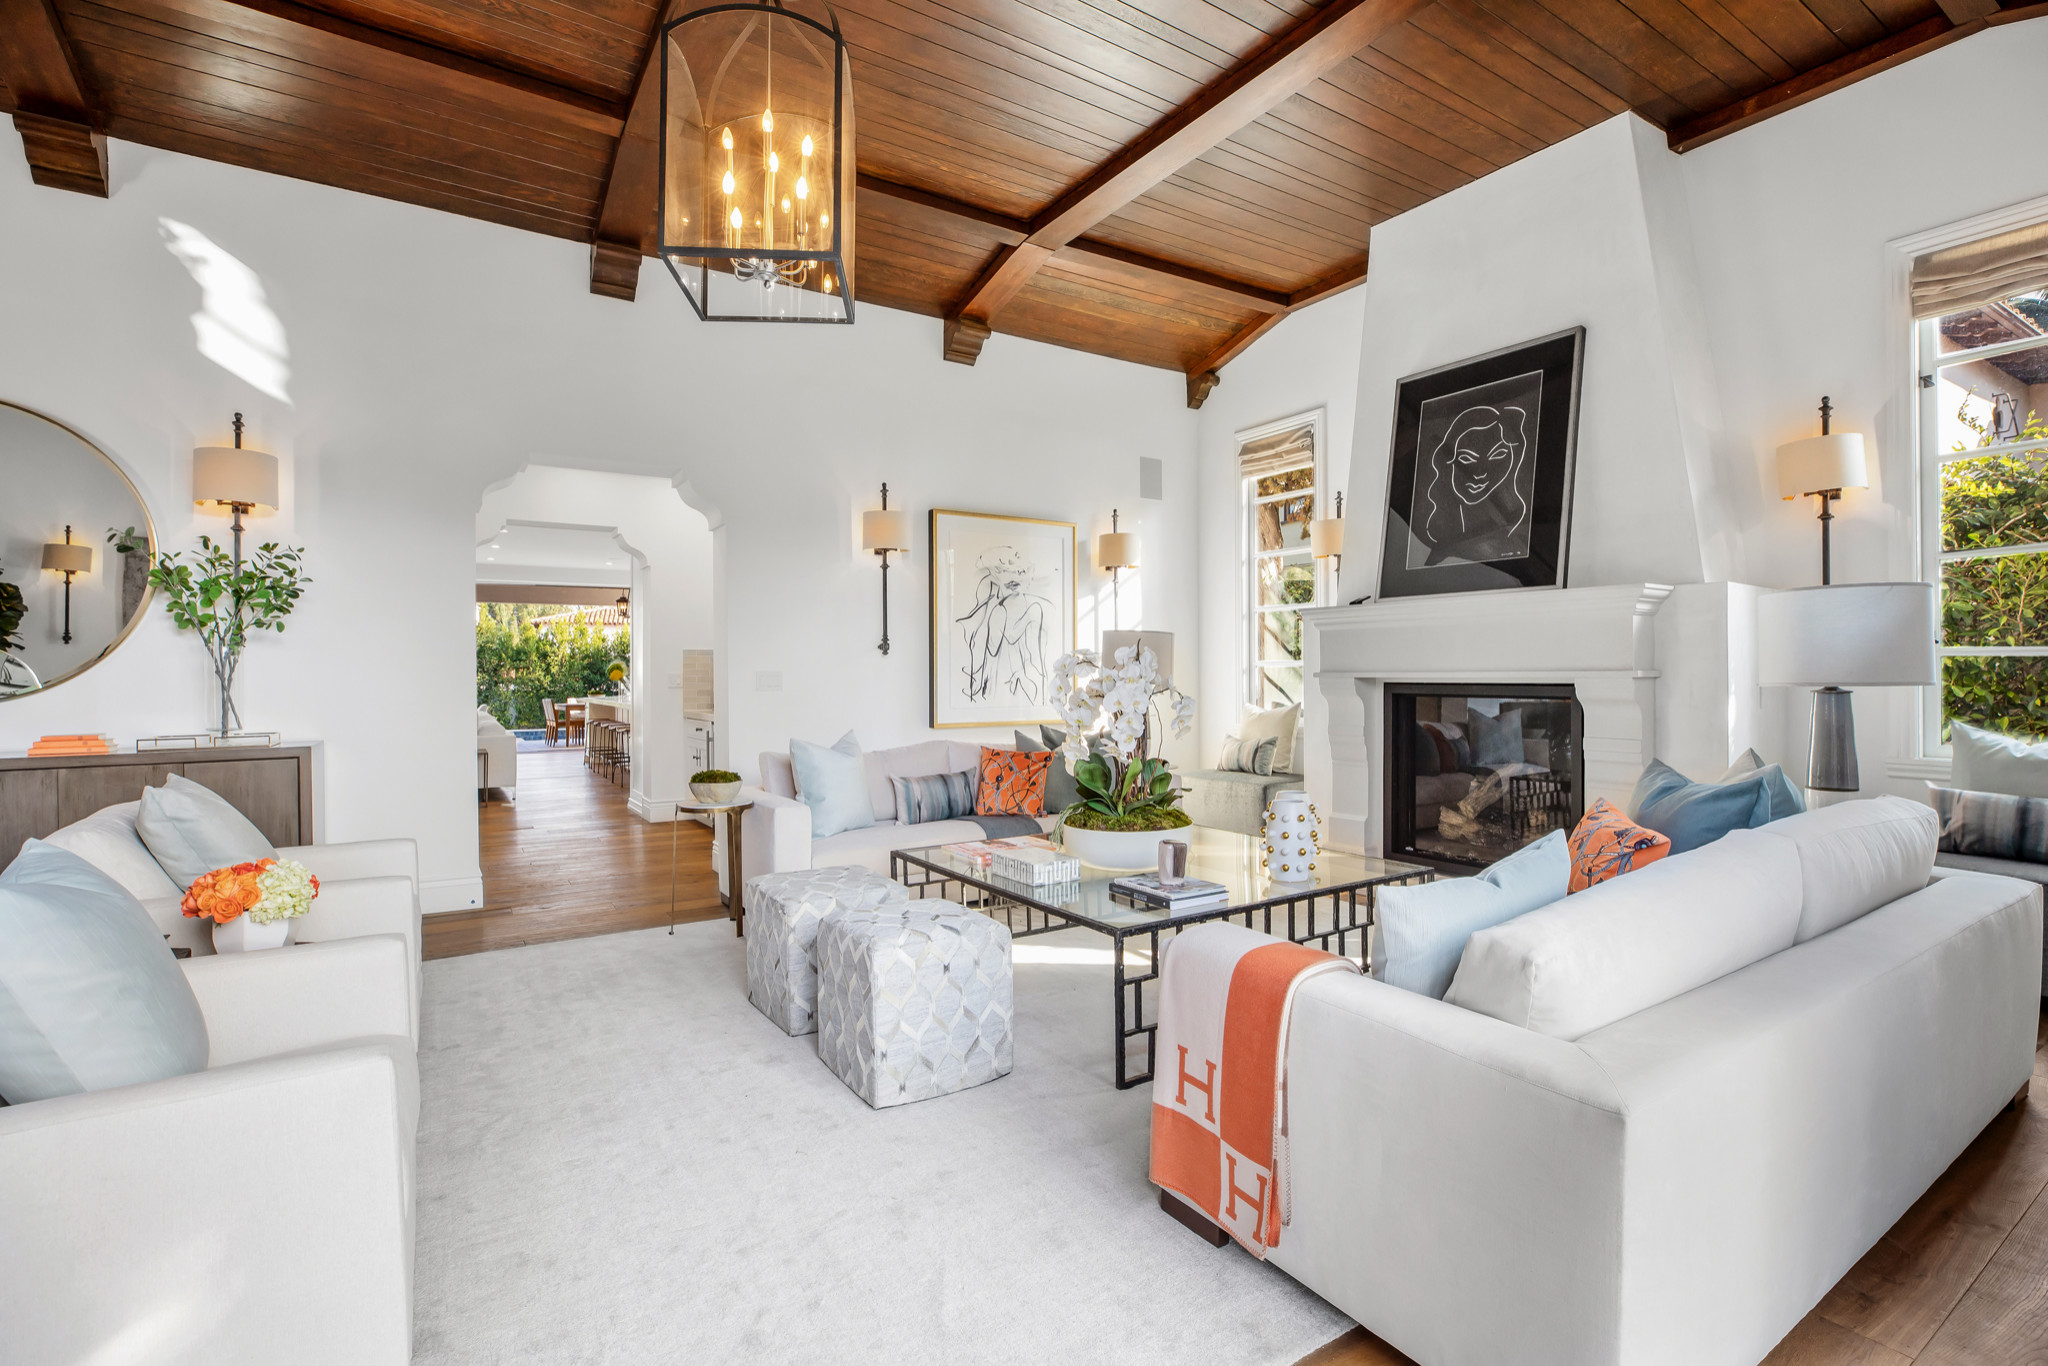 75 Beautiful Mediterranean Living Room Pictures Ideas February 2021 Houzz